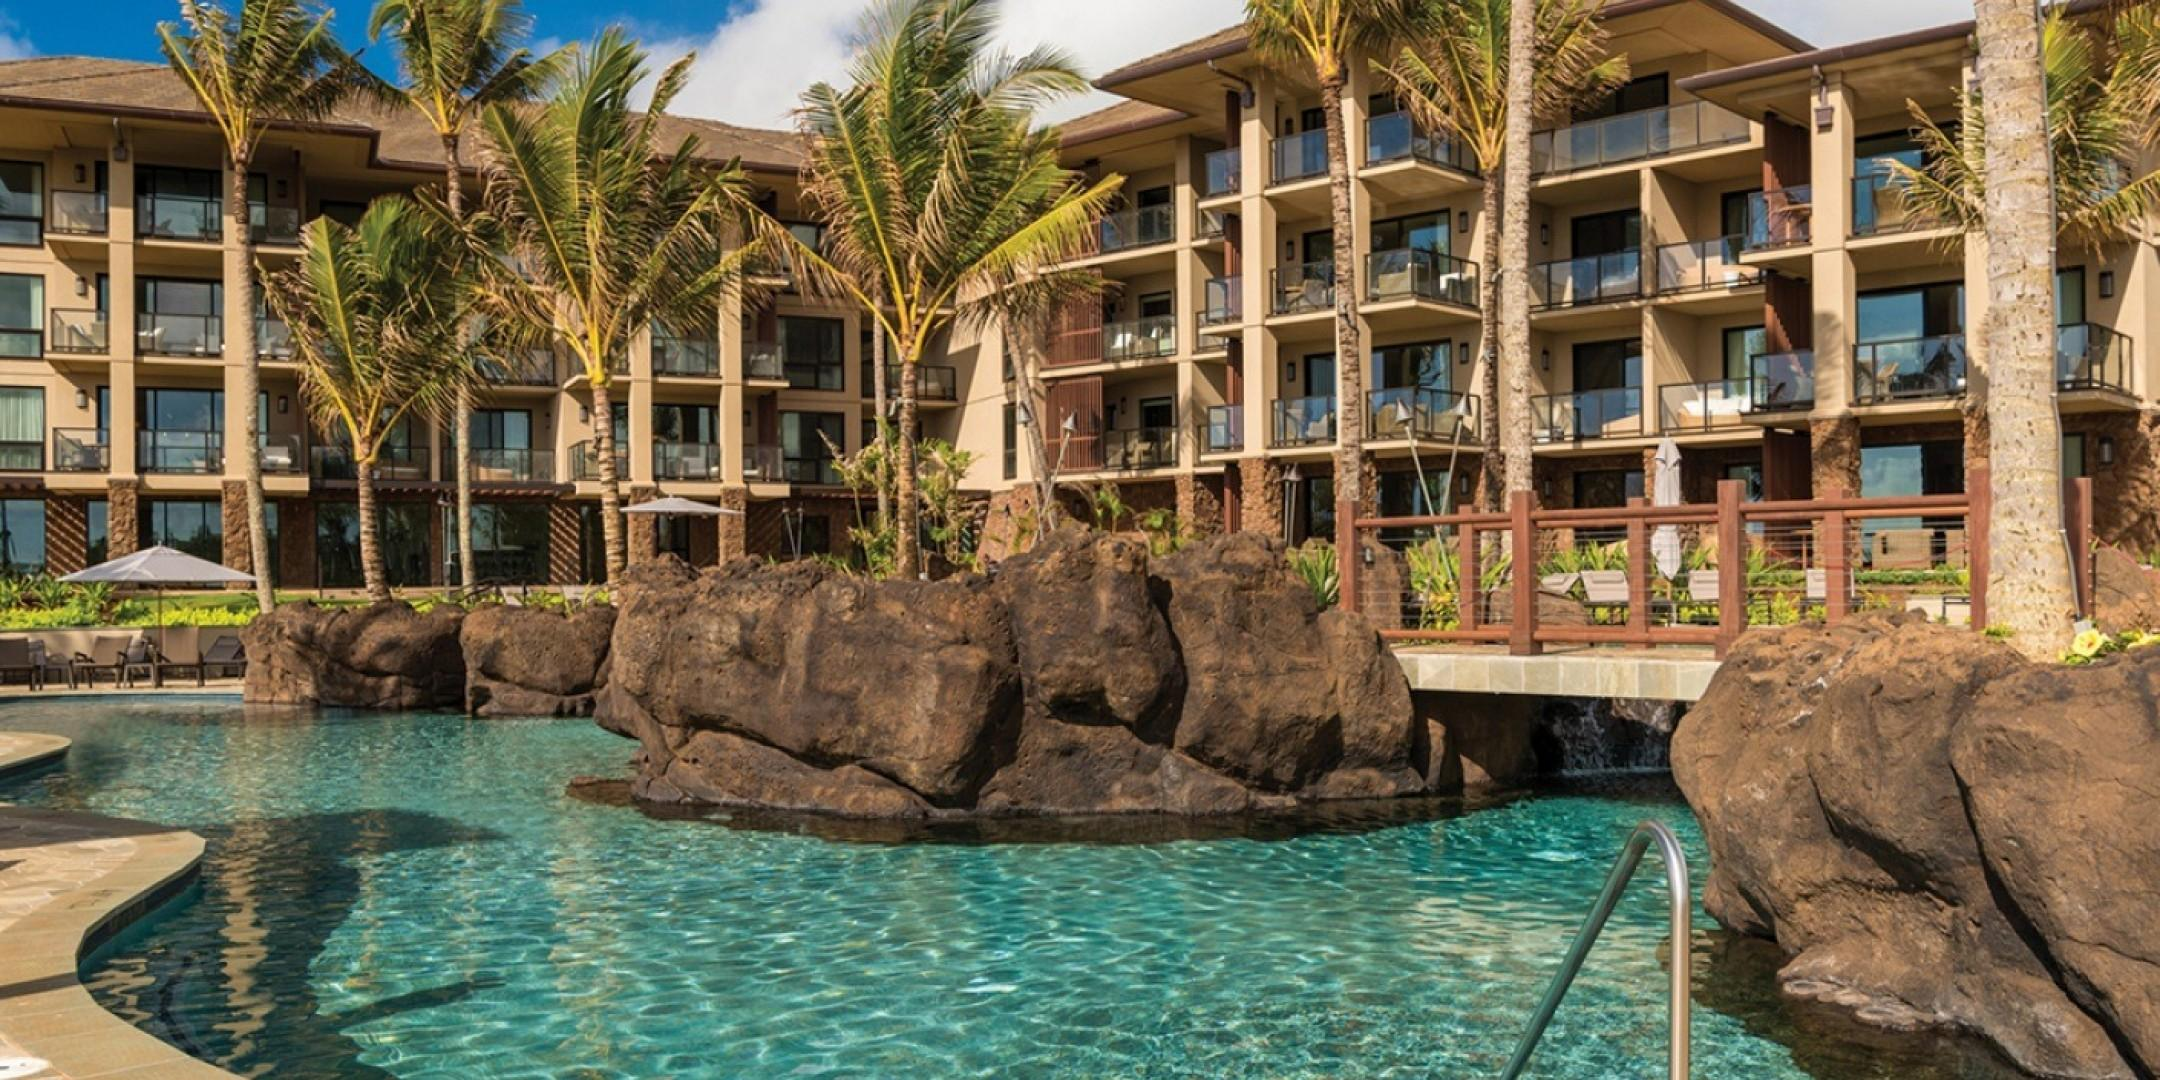 The Maliula ohana pool is the perfect place for families to enjoy their day together.